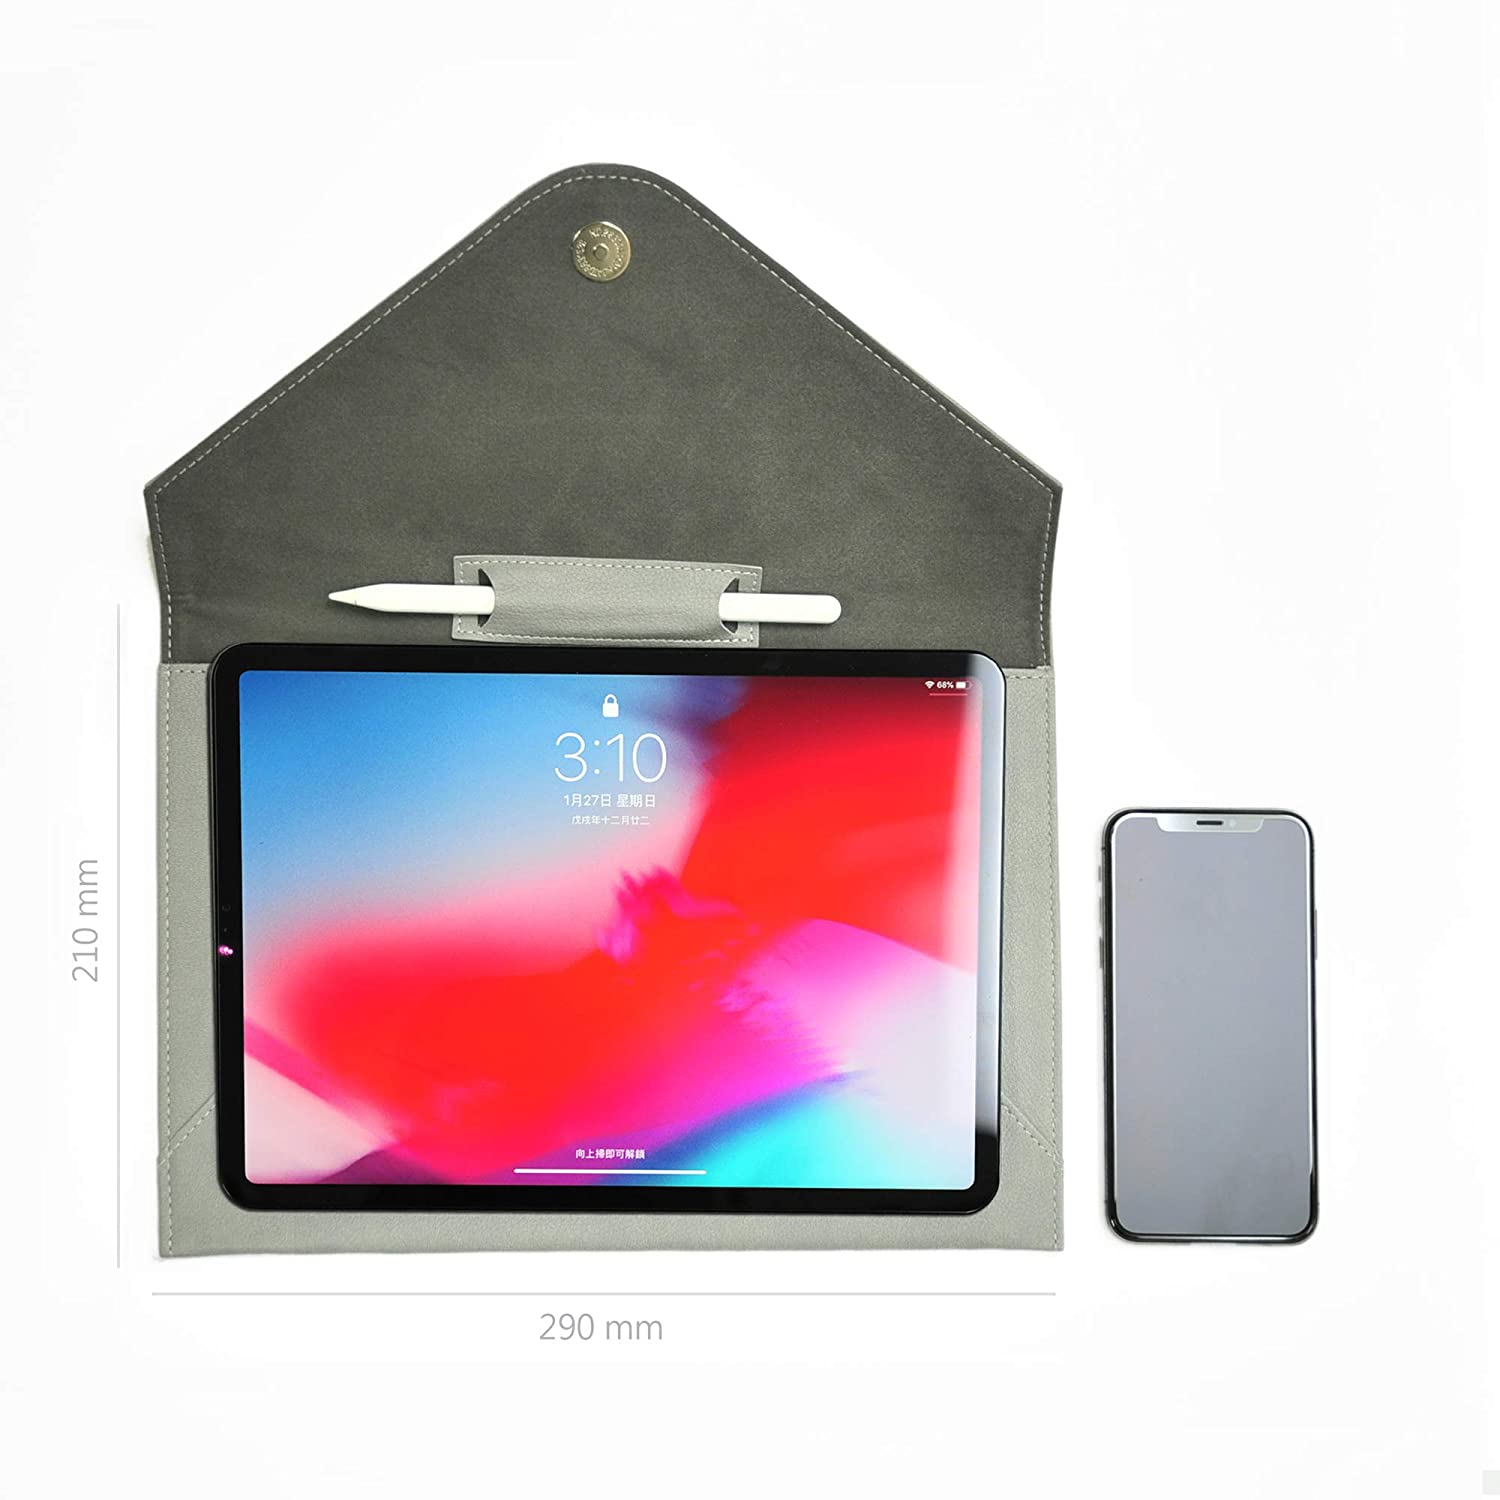 """Sleeve for iPad Pro 11 inch 10-11 inch, Duck Egg Pen Holder /& Pocket Water Resistant Fits for 9.7 to 10.5 Tablet Surface Go Bellagenda 10.5 inch Tablet Sleeve Case Samsung Galaxy Tab 9.7/"""""""